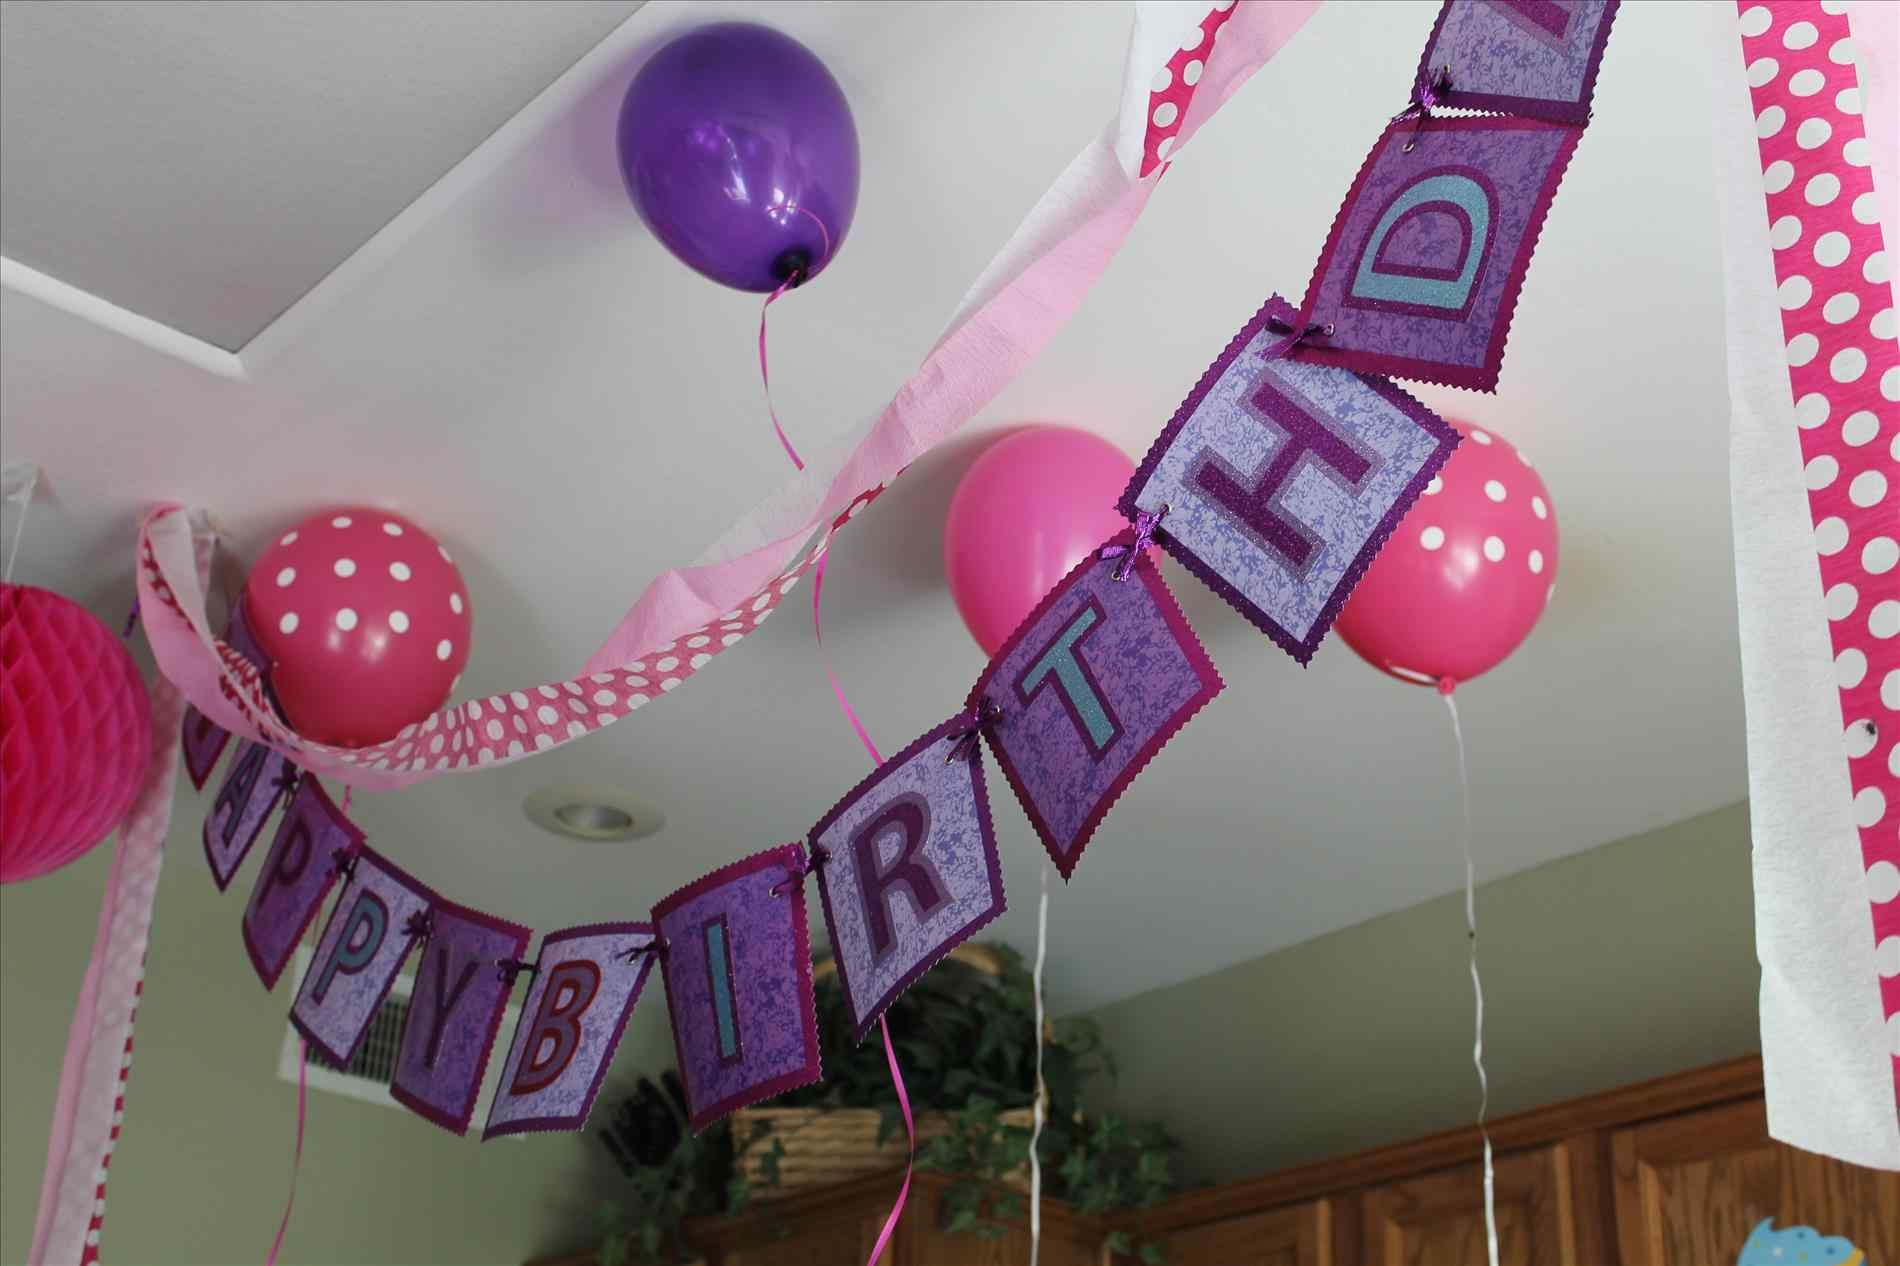 New post birthday room decoration ideas at home has been published